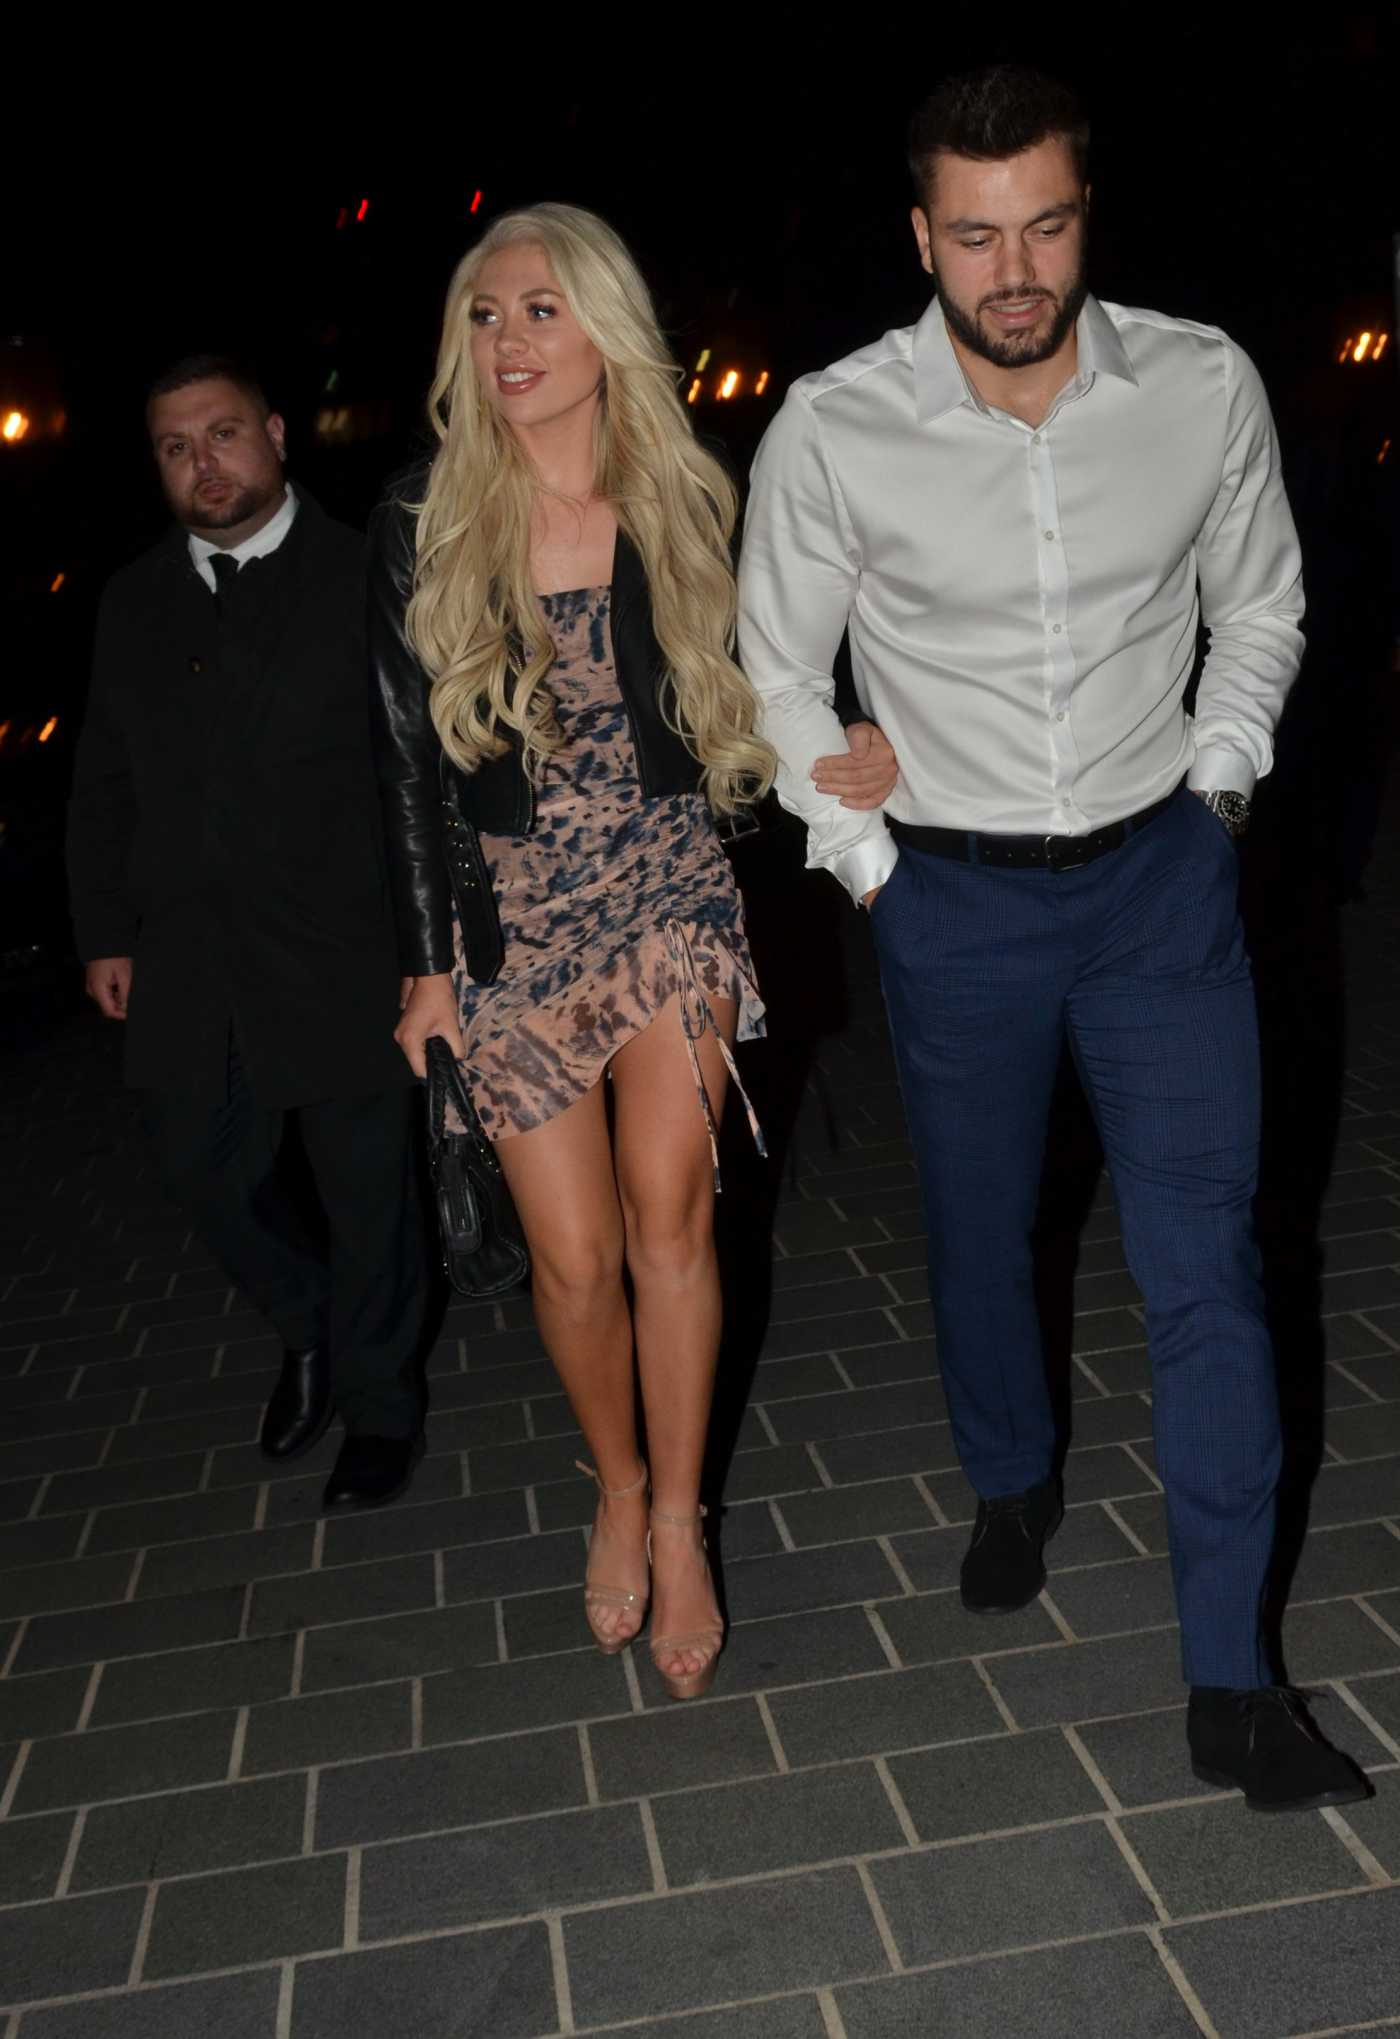 Paige Turley in a Black Jacket Arrives at Dakota Restaurant Out with Finley Tapp in Manchester 07/11/2020